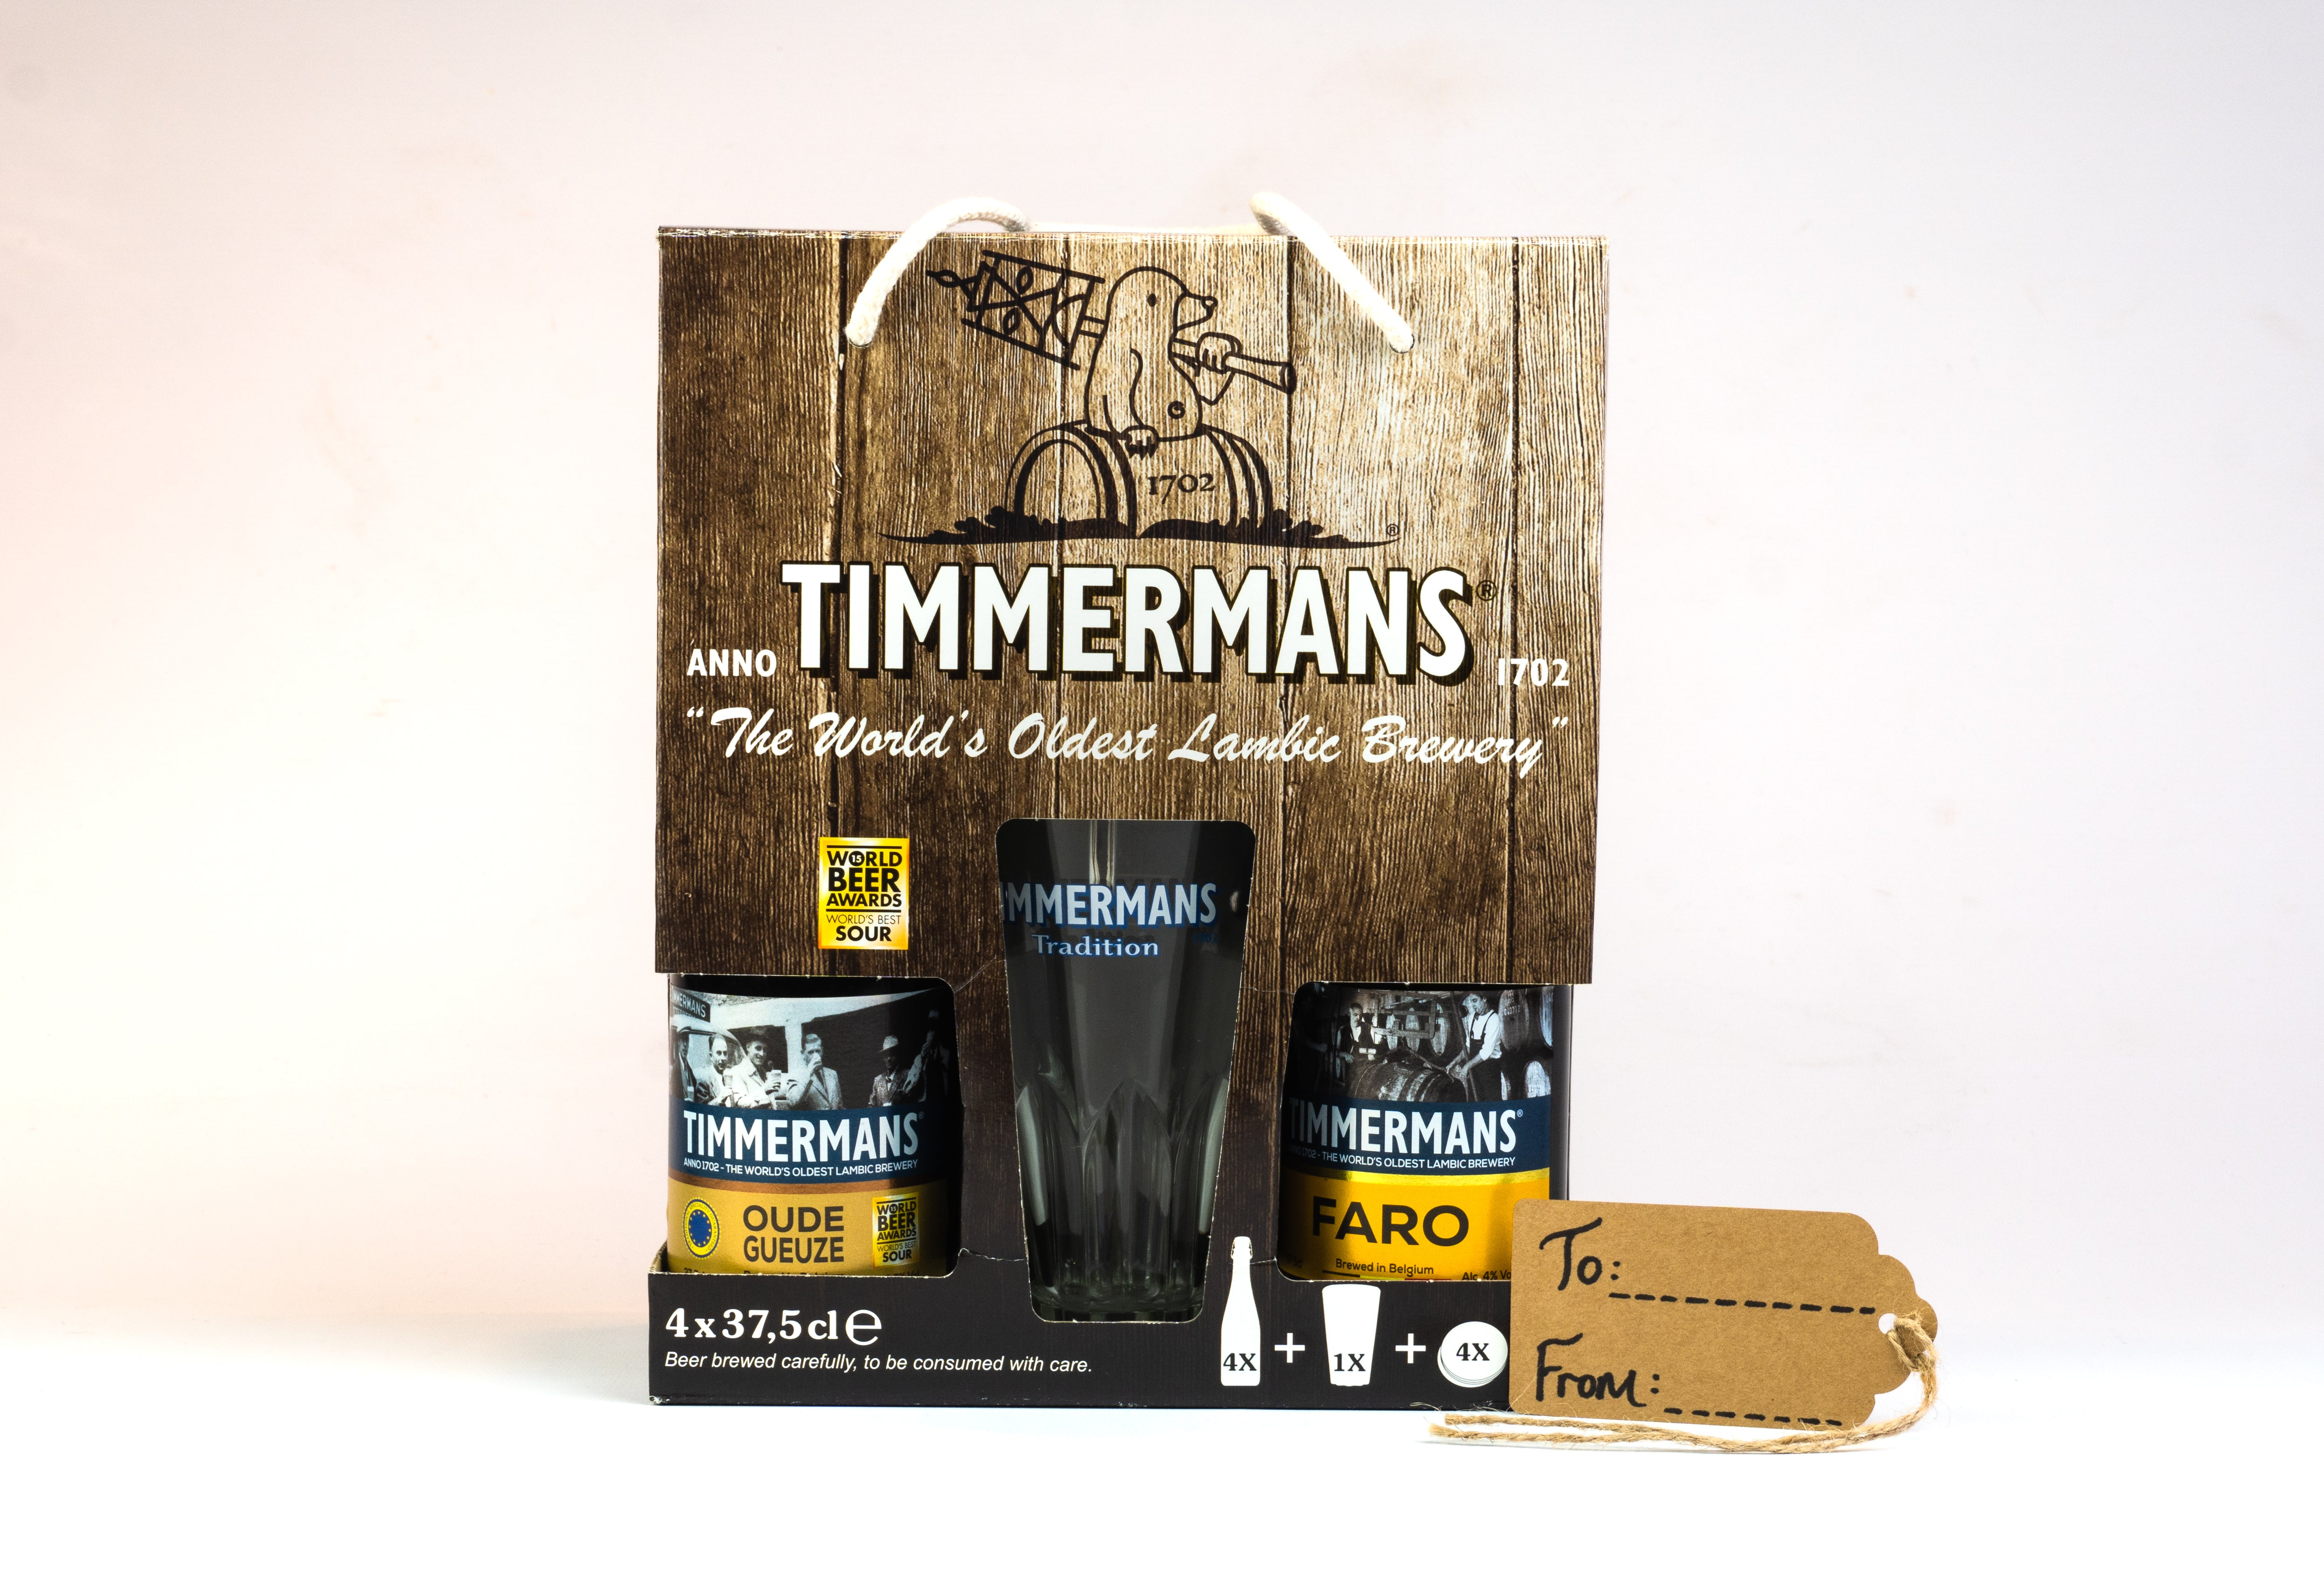 Timmermans Lambic Beer Gift Pack